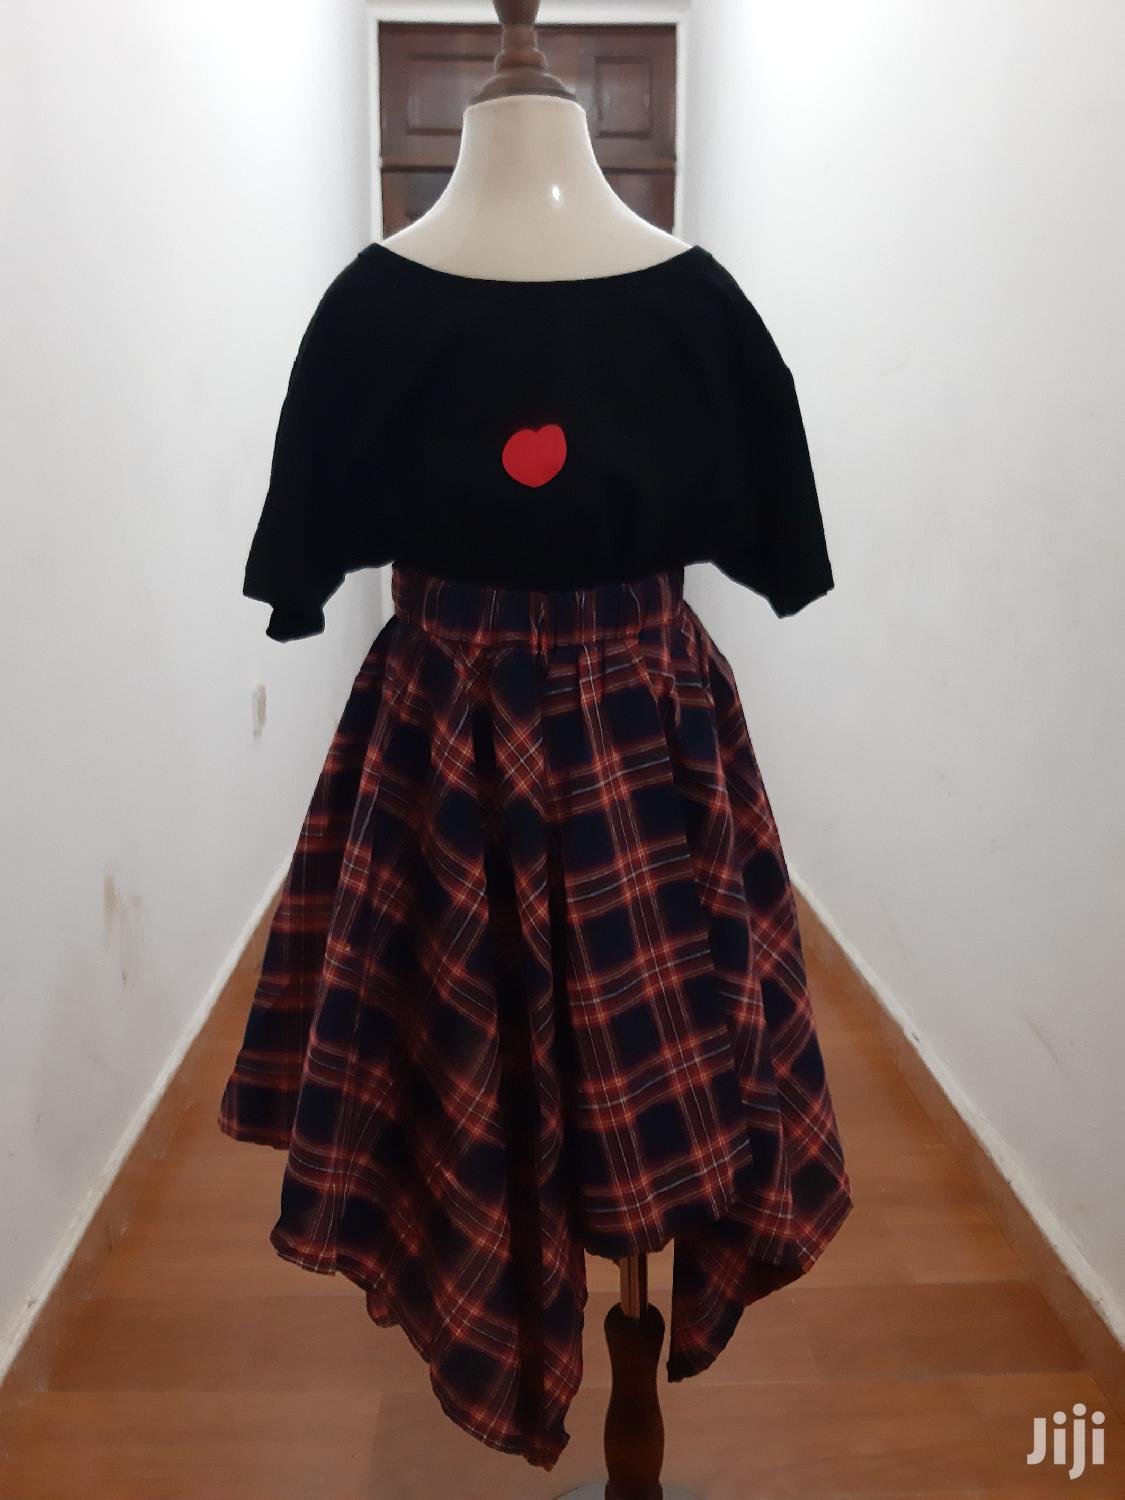 Skirt and Top for Girls